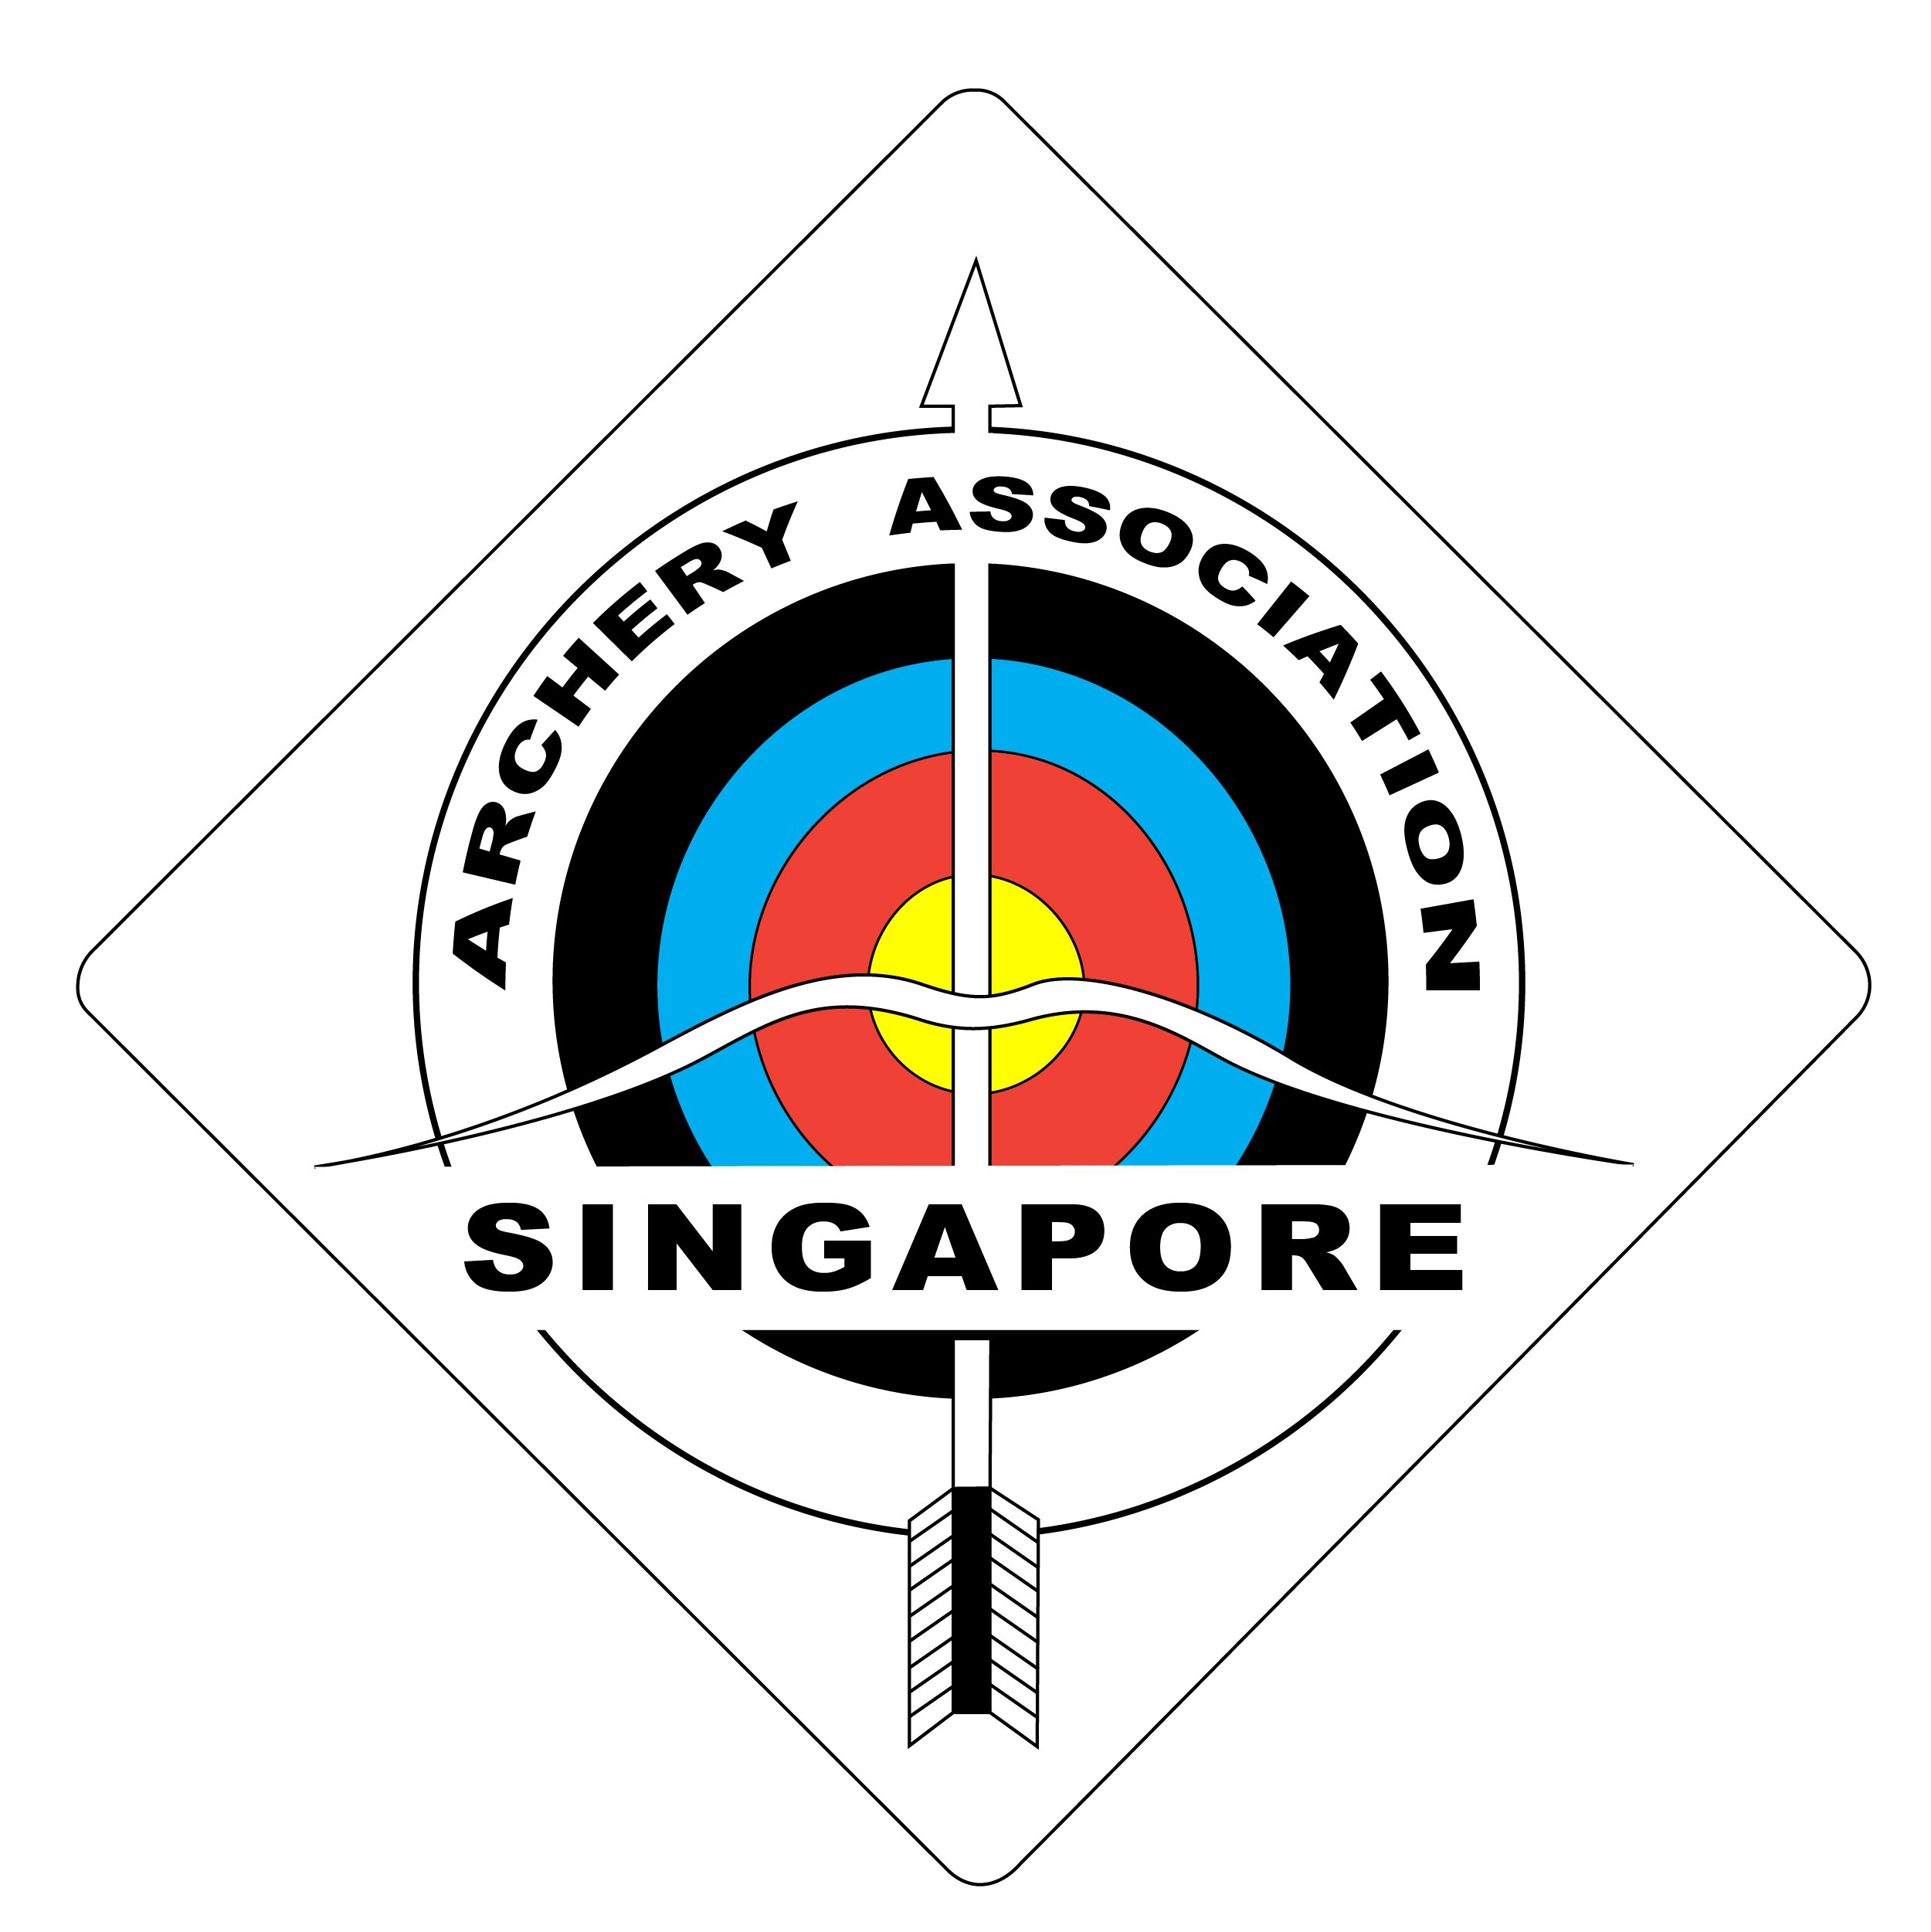 Archery Association of Singapore (AAS)